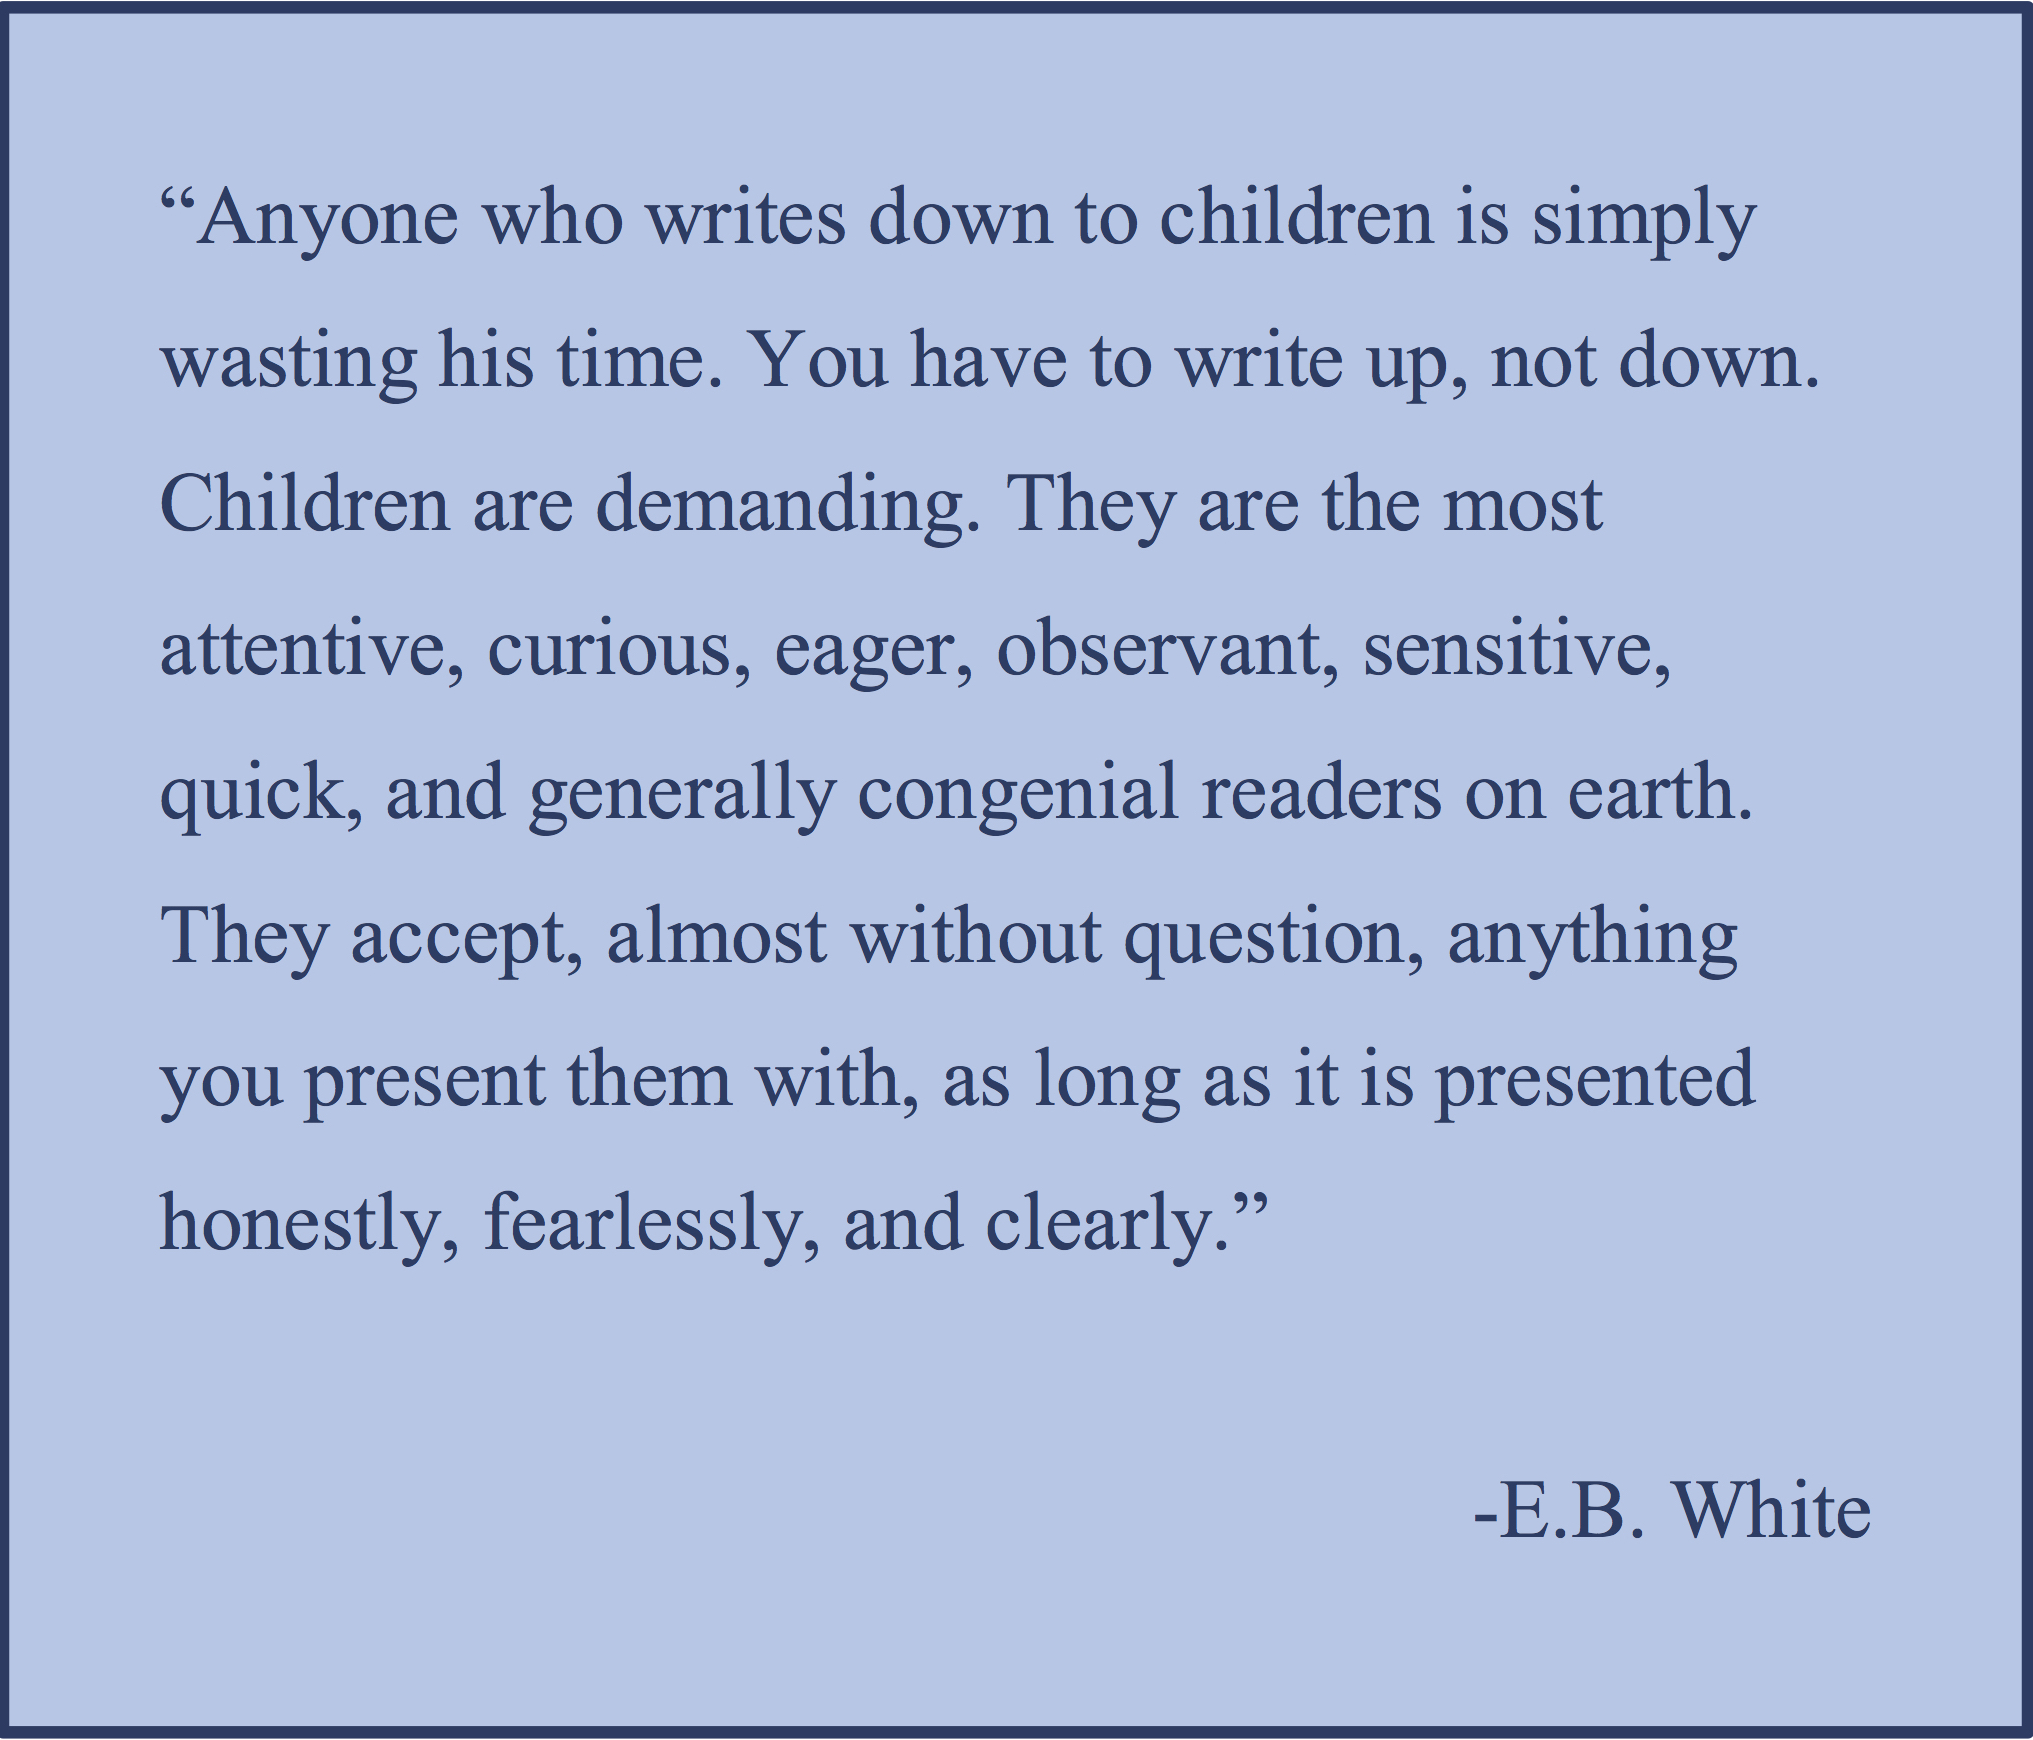 EB White: Anyone who writes down to children is simply wasting his time. You have to write up, not down.